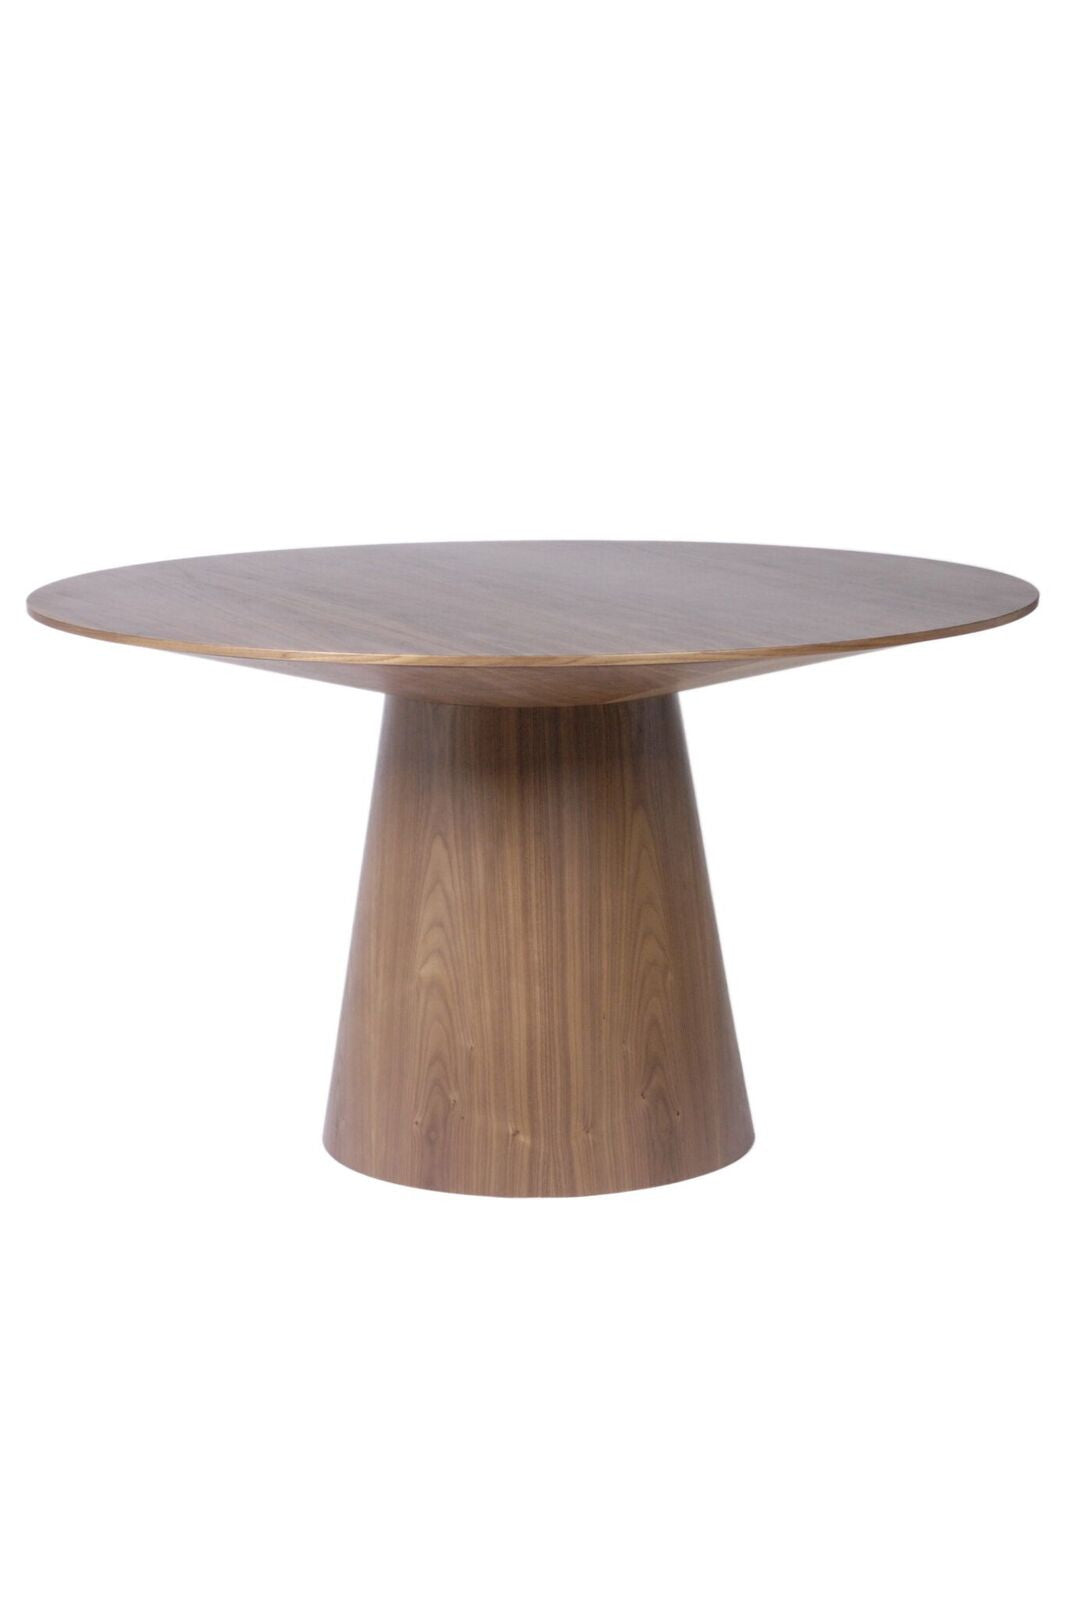 "Circular Walnut 53"" Conference / Meeting Table"